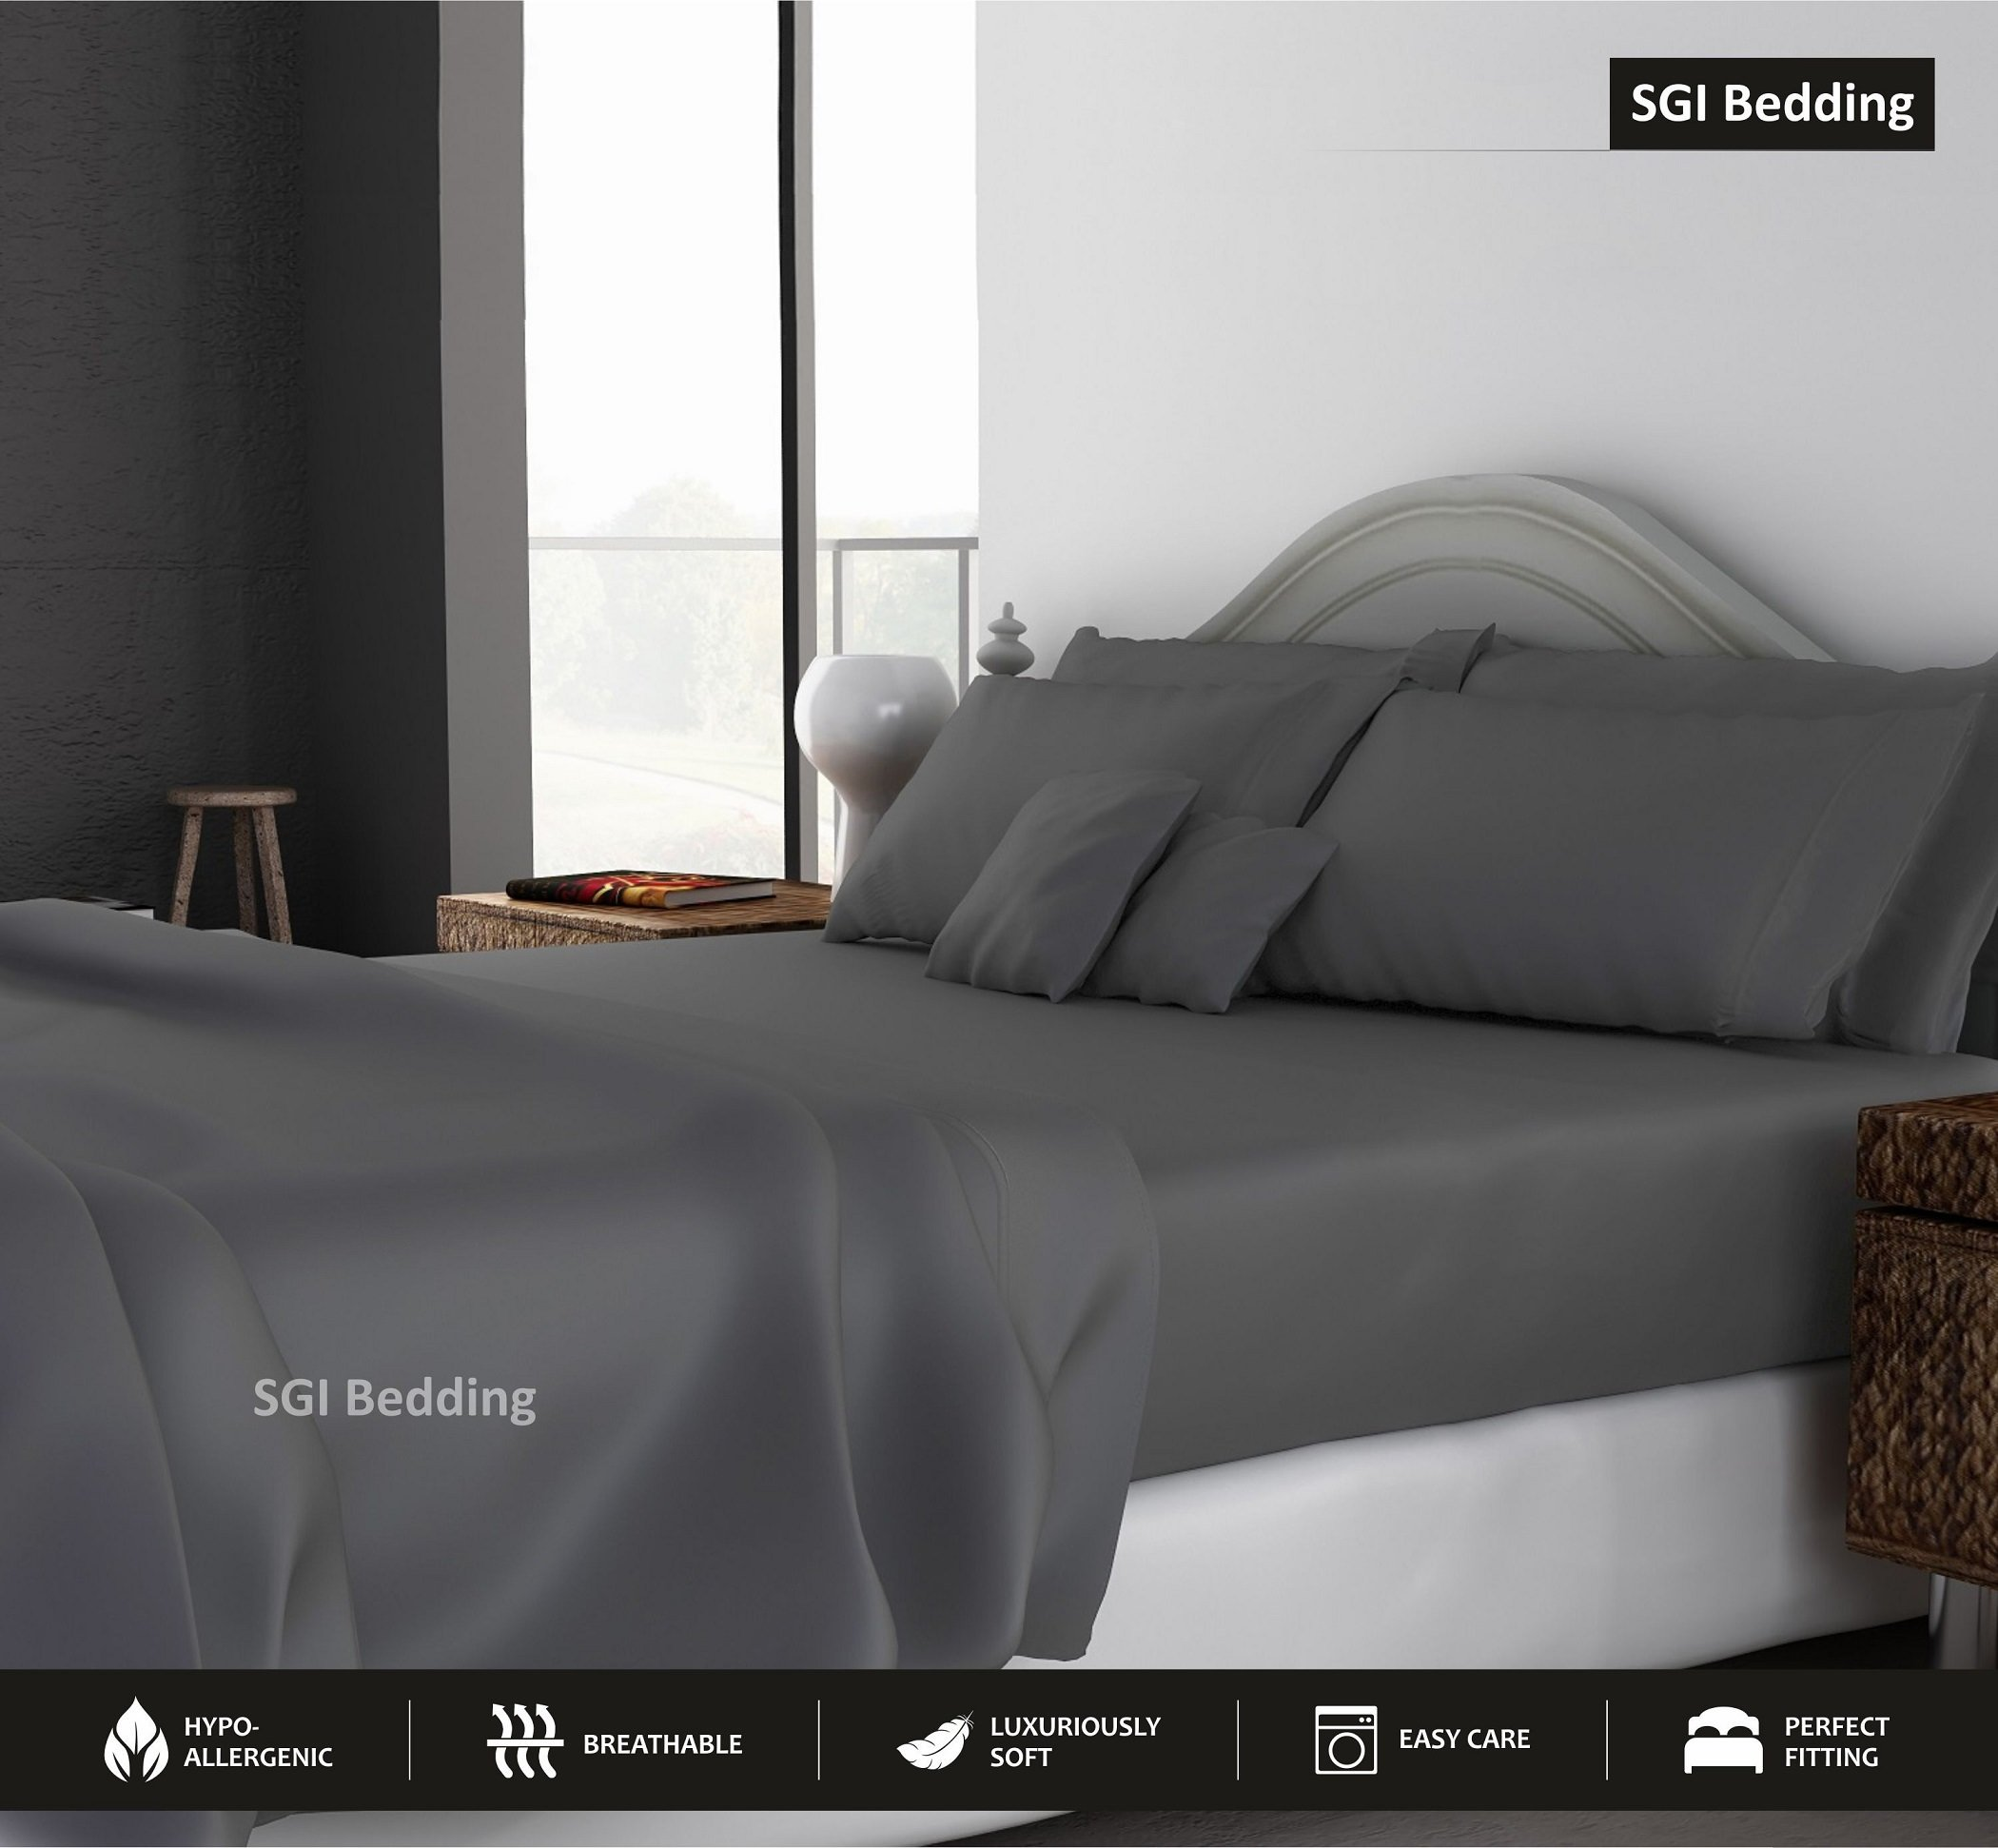 QUEEN SHEETS LUXURY SOFT 100% EGYPTIAN COTTON - Sheet Set for Queen Mattress Dark Gray SOLID 600 Thread Count 15'' Deep Pocket # Exotic Bedding Collection